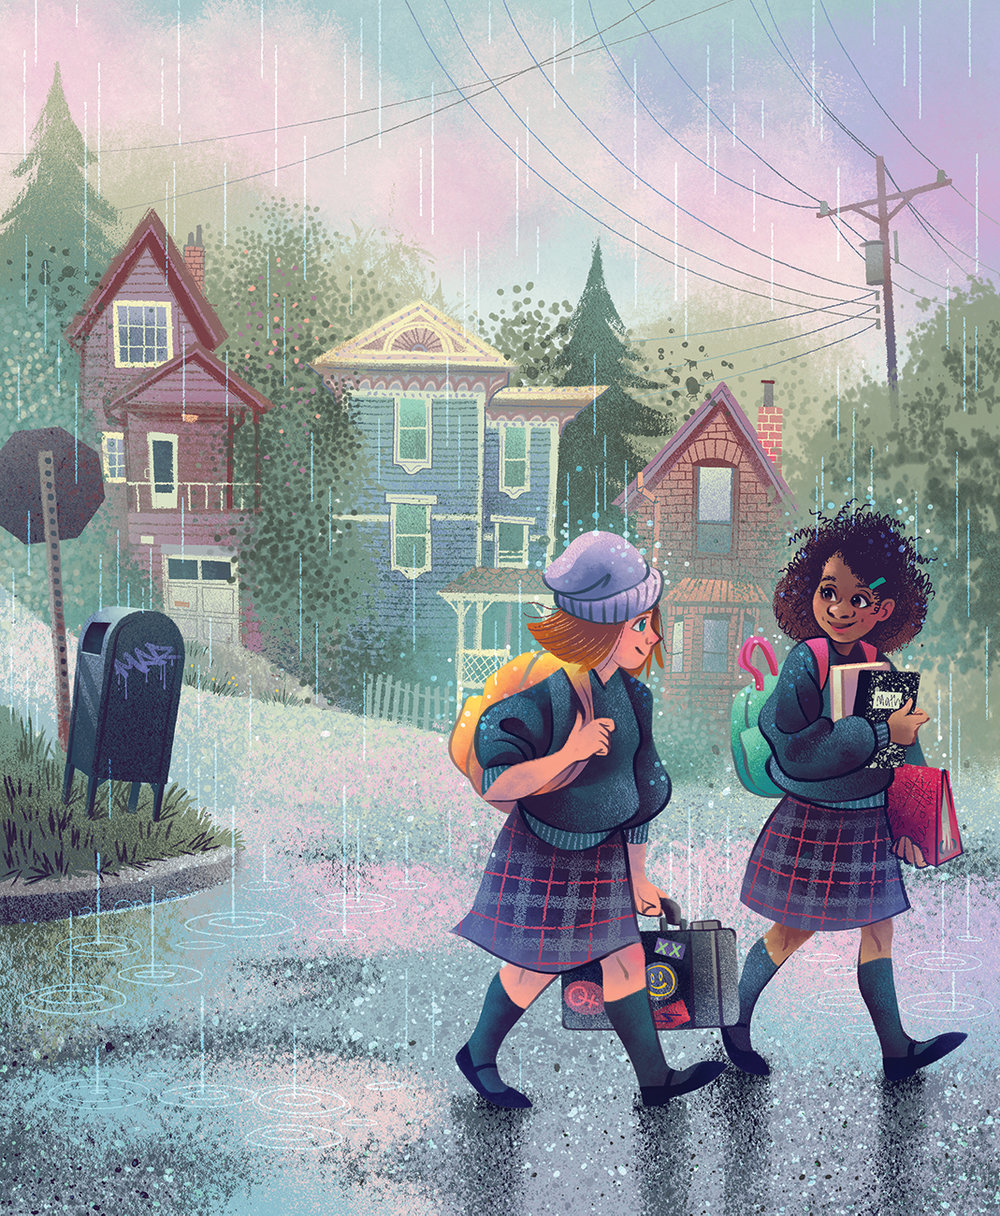 walking to school Valerie Valdivia.jpg